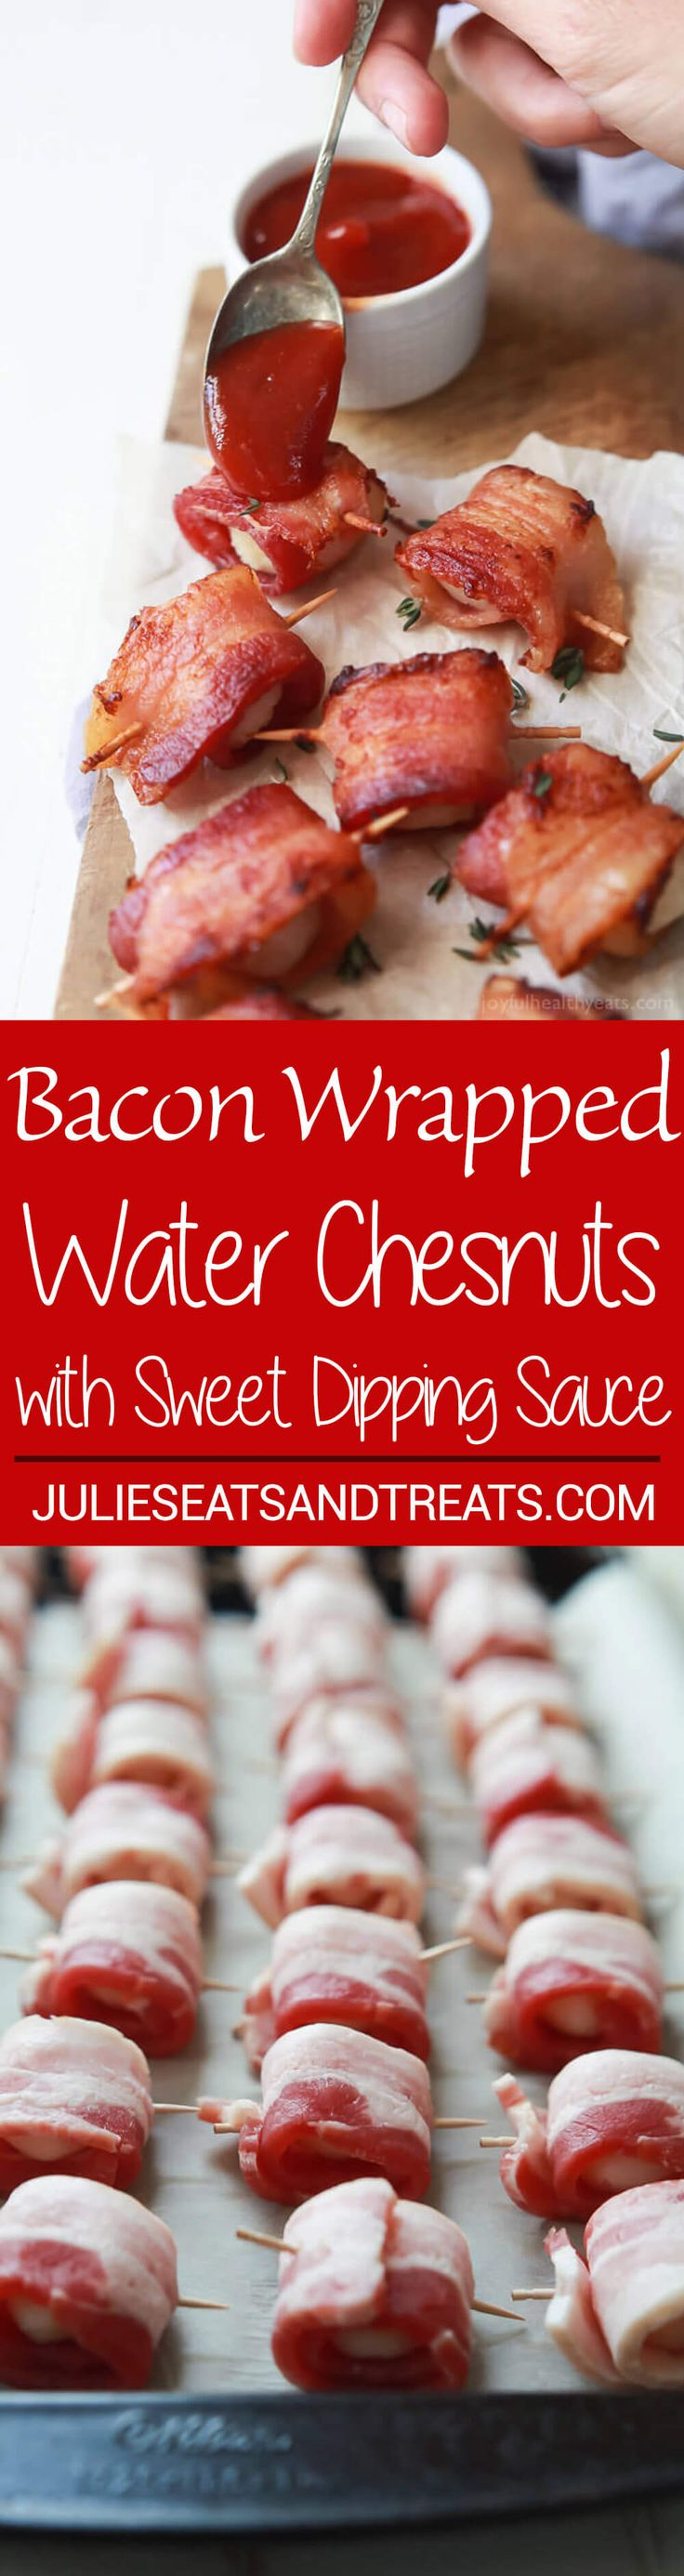 Bacon Wrapped Water Chestnuts Recipe served with a Sweet Dipping Sauce. This appetizer is sweet, salty, out of control delicious and so easy to make! Perfect for the holidays! ~ http://www.julieseatsandtreats.com